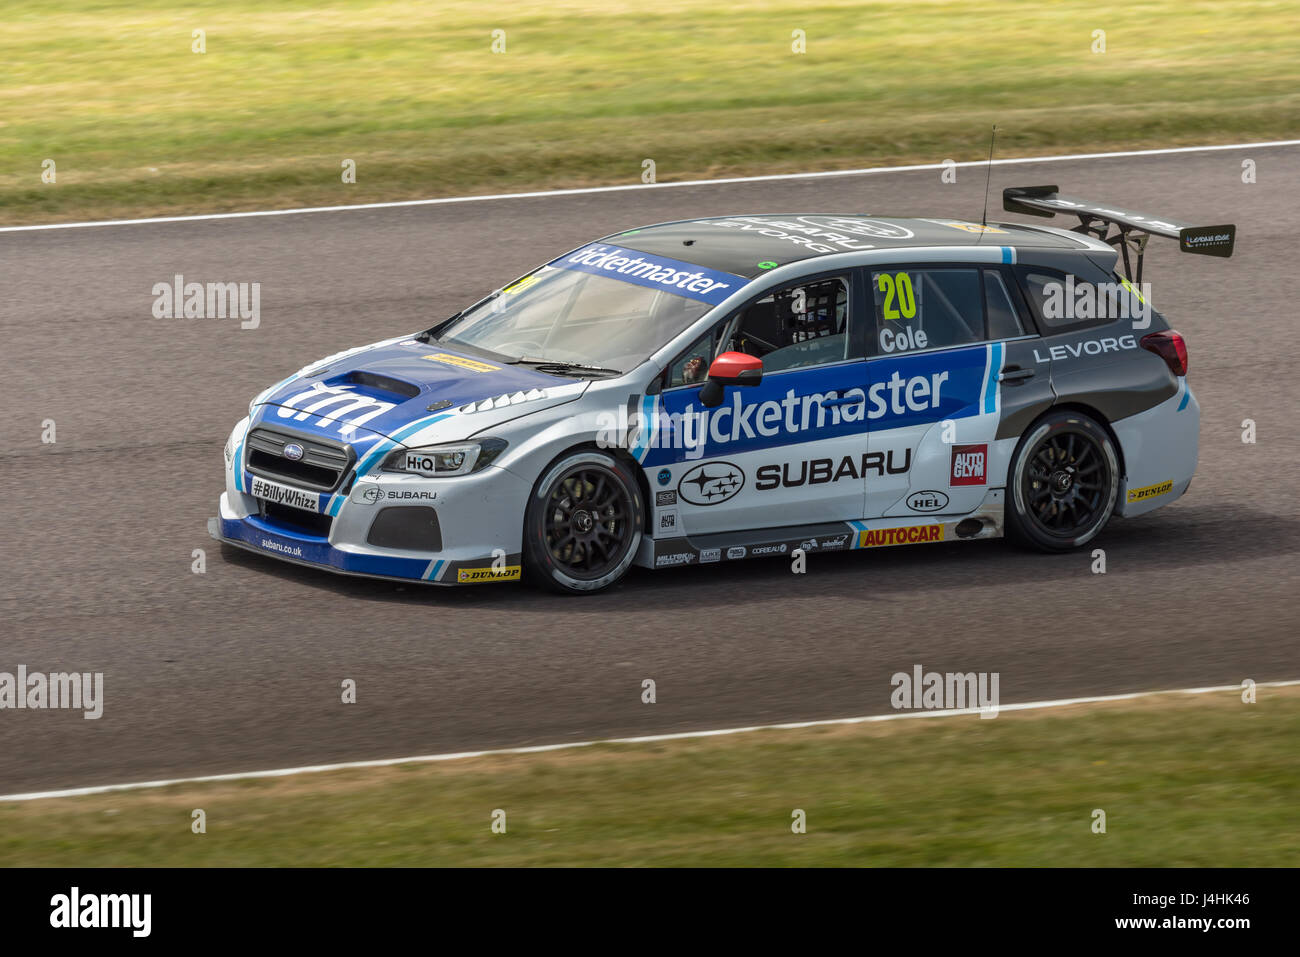 BTCC Driver James Cole competing at Thruxton Circuit, Hampshire, on Sunday 7th May 2017. - Stock Image